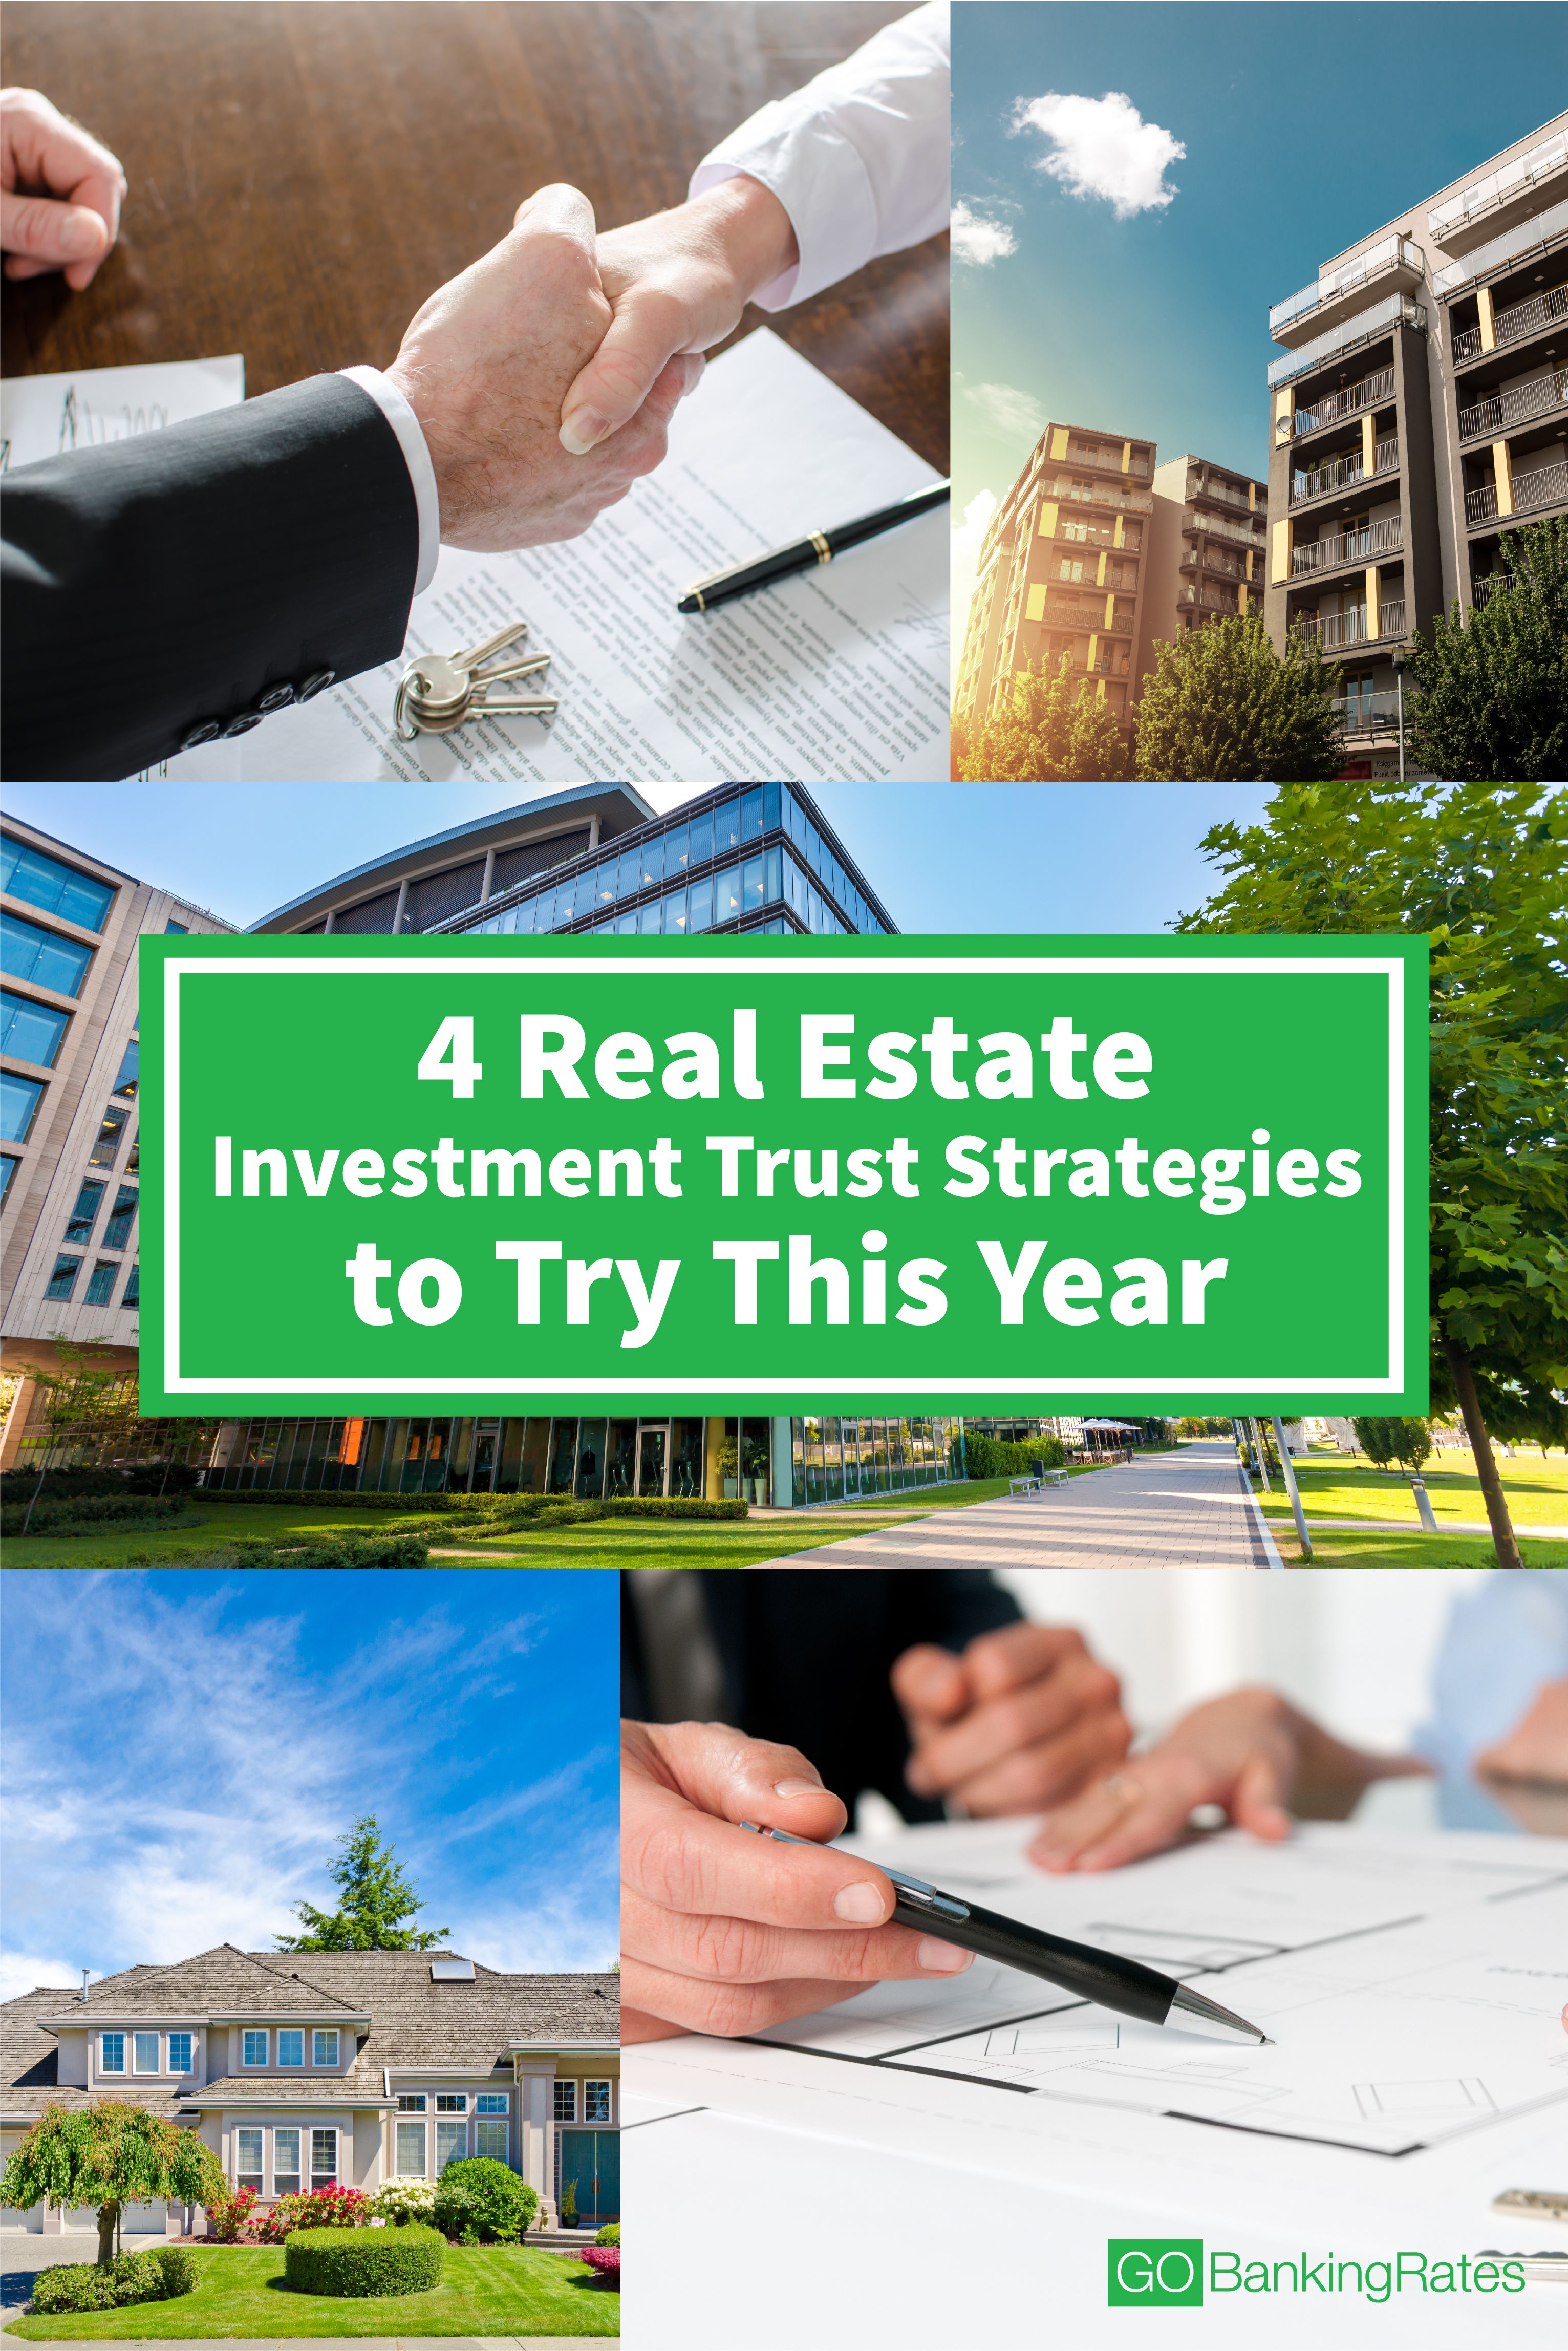 Real Estate Investment Trust Strategies To Try This Year Real Estate Investment Trust Real Estate Investing Real Estate Marketing